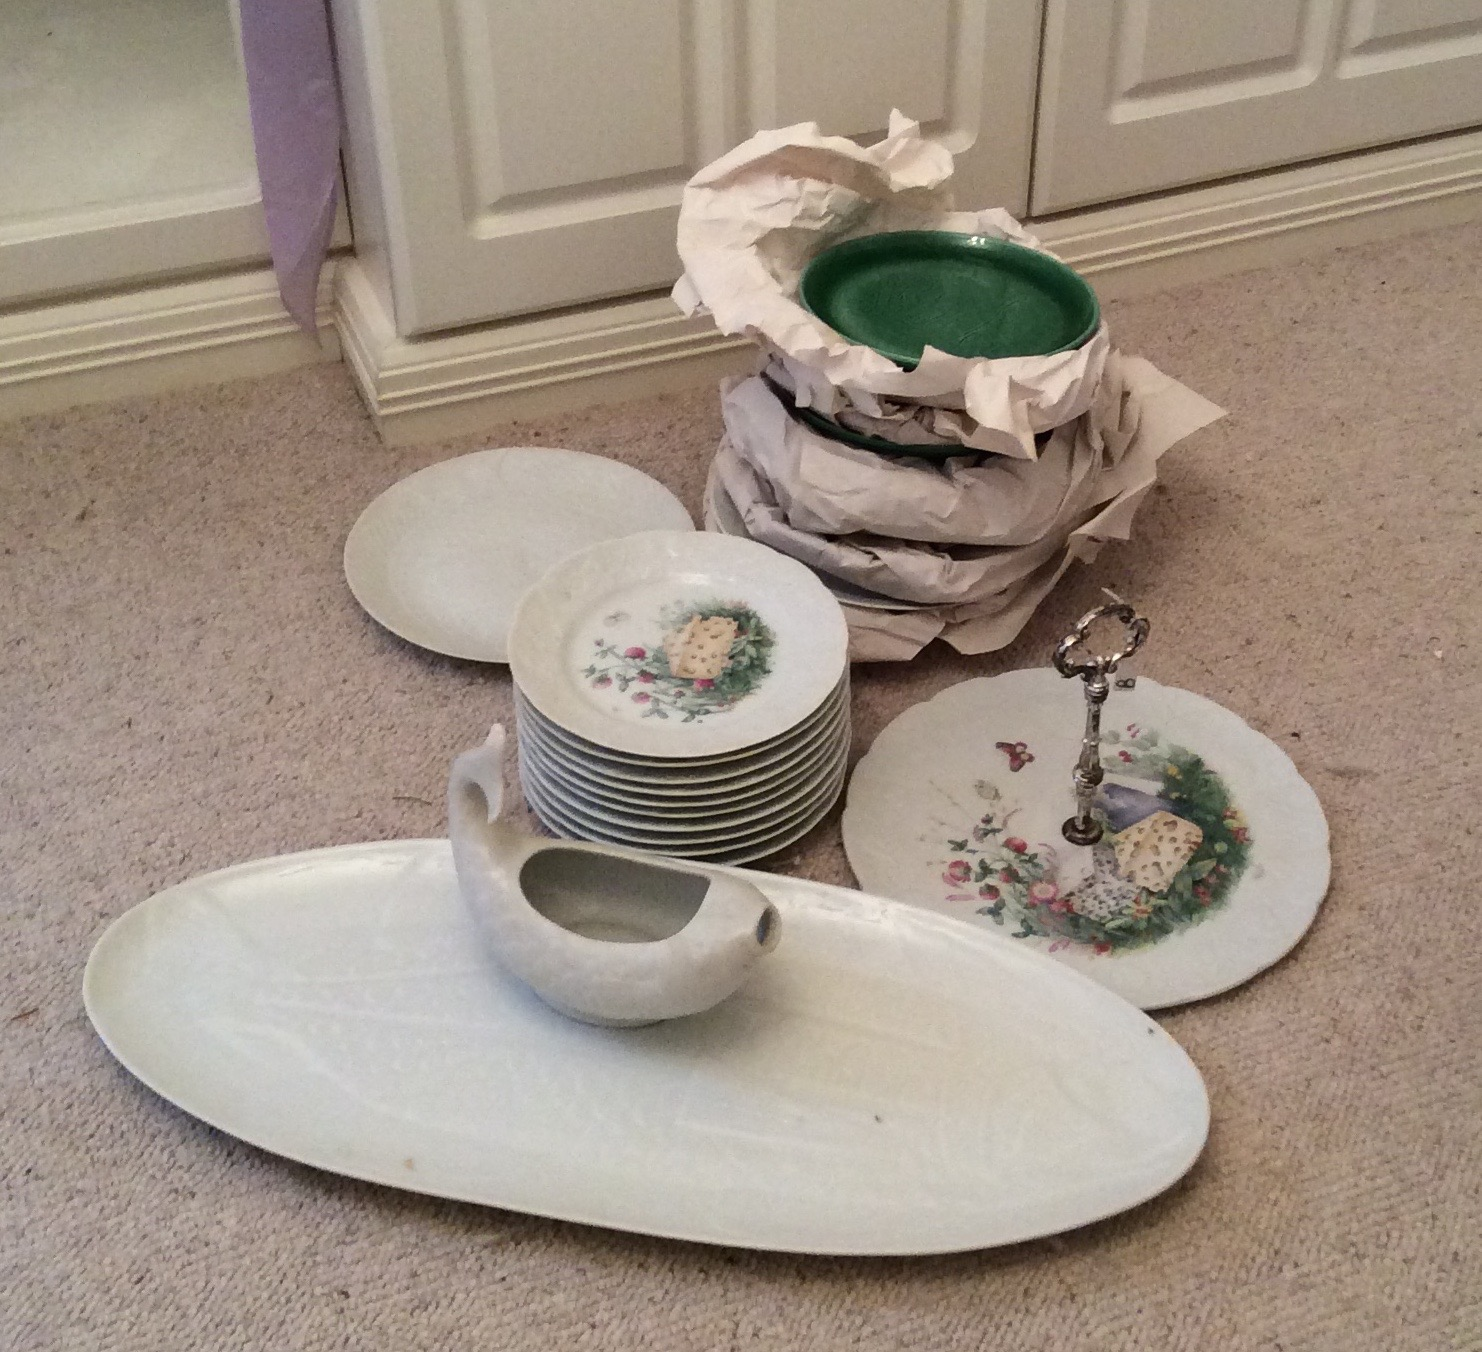 Lot 38 - A porcelain fish service, a cheese service and 6 plates